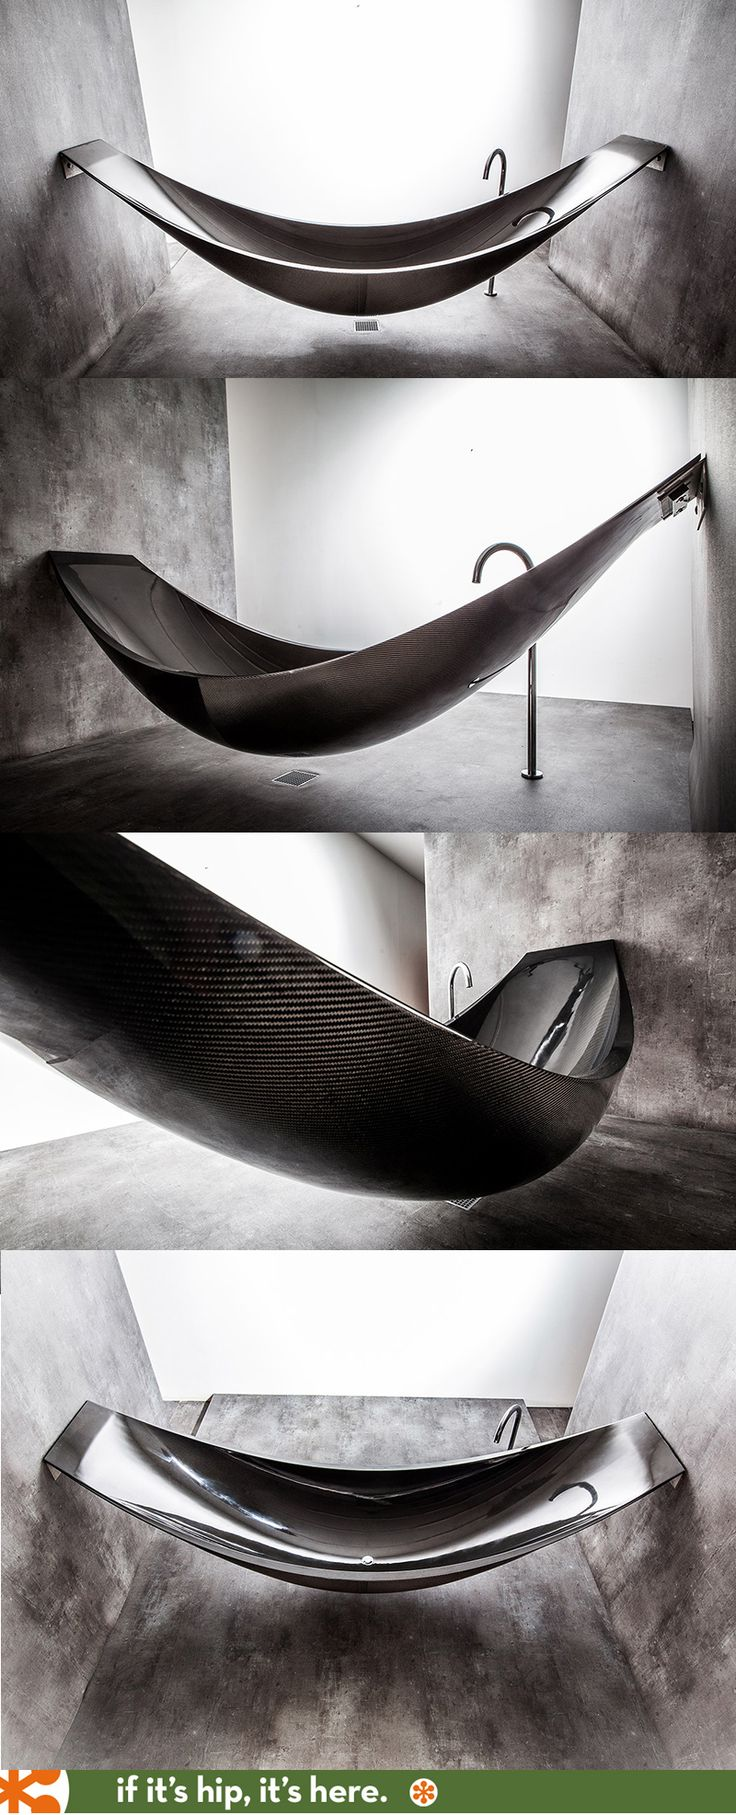 *okay, found this under design.  Yes its great.  If you eat lettuce everyday. Skinny people 1- Fat people 0.    But I get to eat! (+.5)   Limited Edition Carbon Fiber bathtub inspired by a hammock.